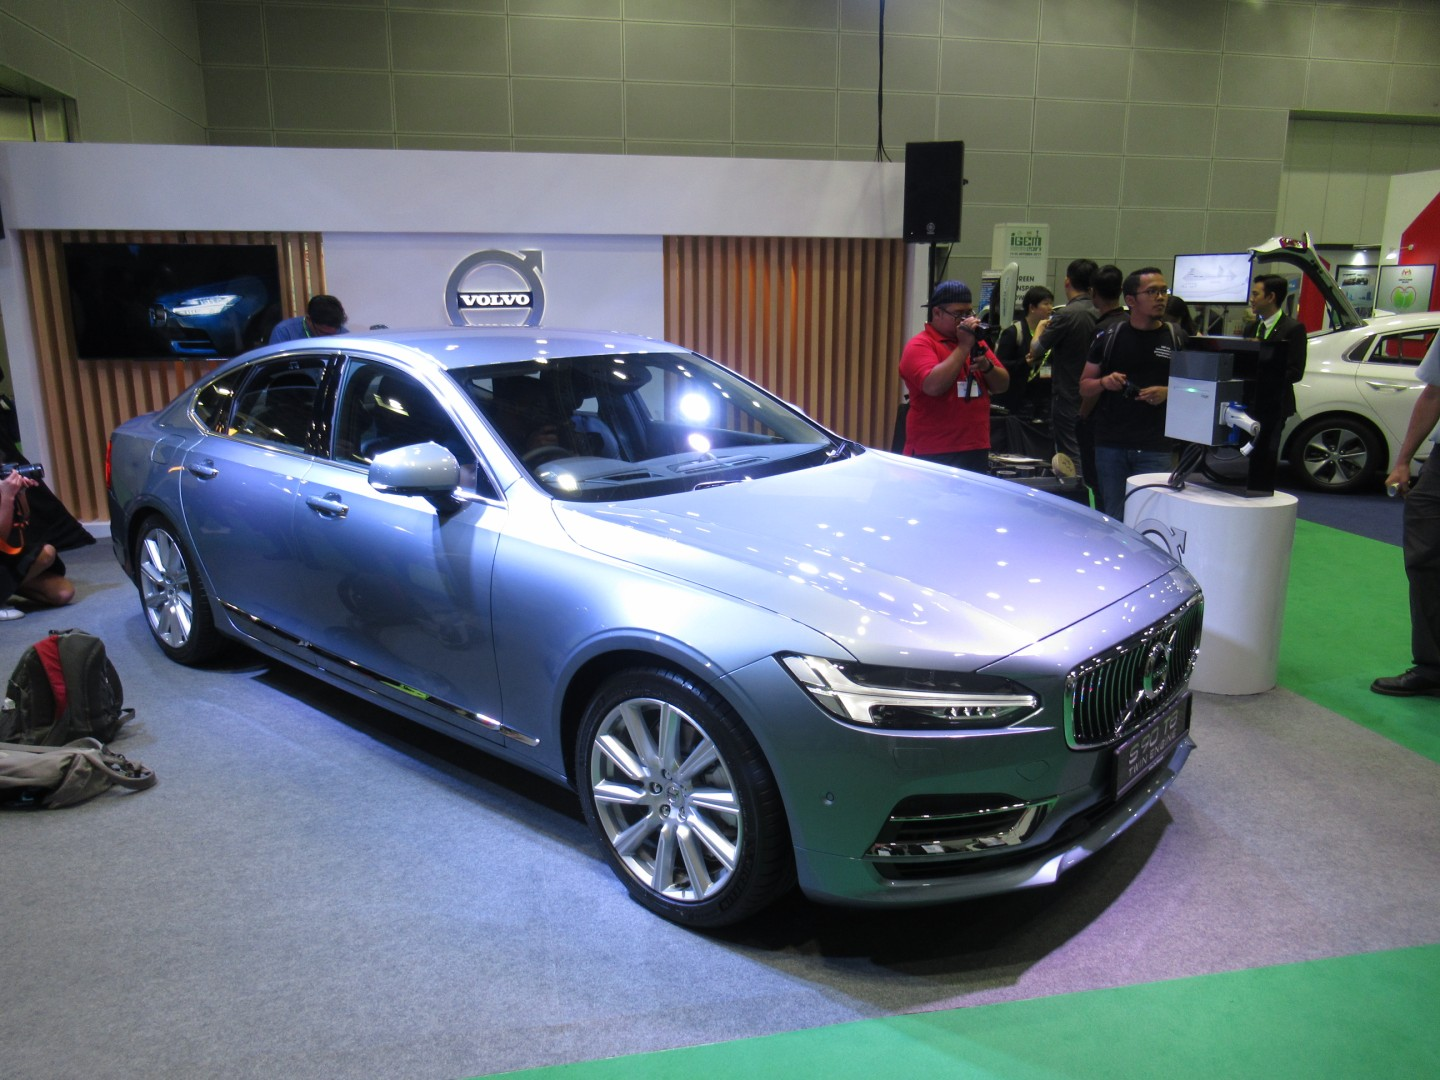 Volvo car malaysia launches the flagship s90 t8 twin engine sedan will also be exported from malaysia to asean region countries